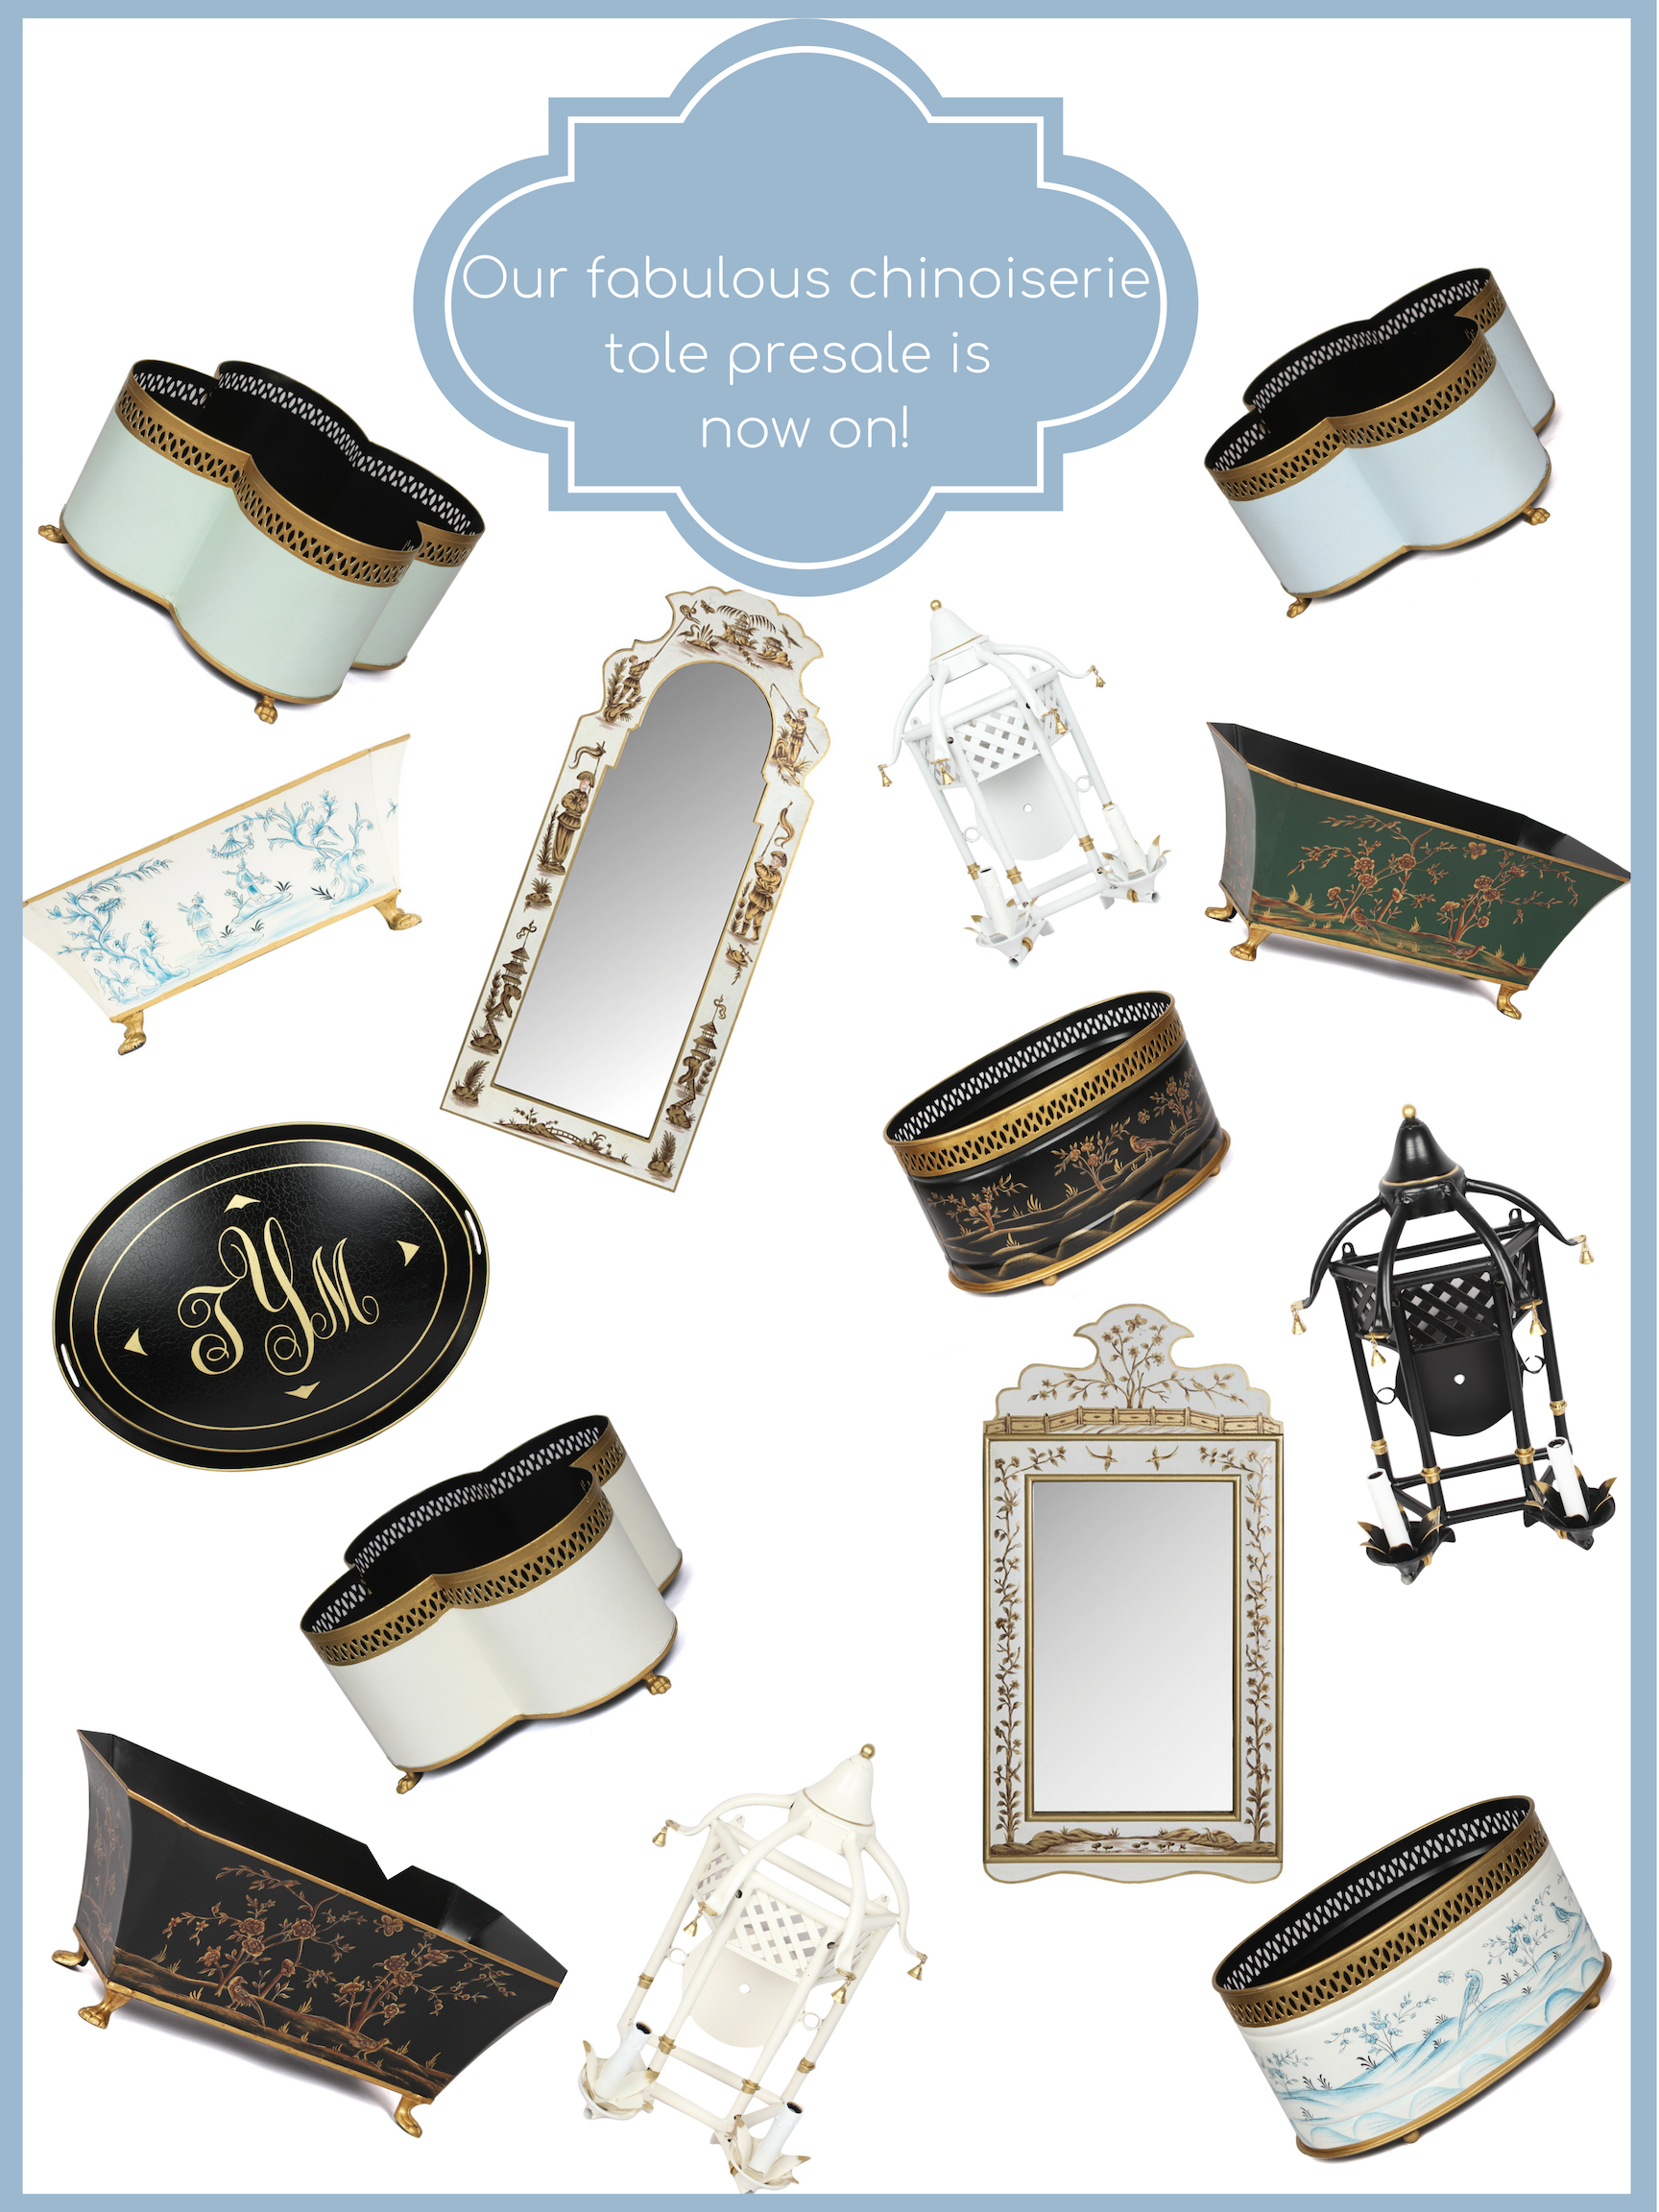 Our chinoiserie tole presale in on and a tole giveaway!